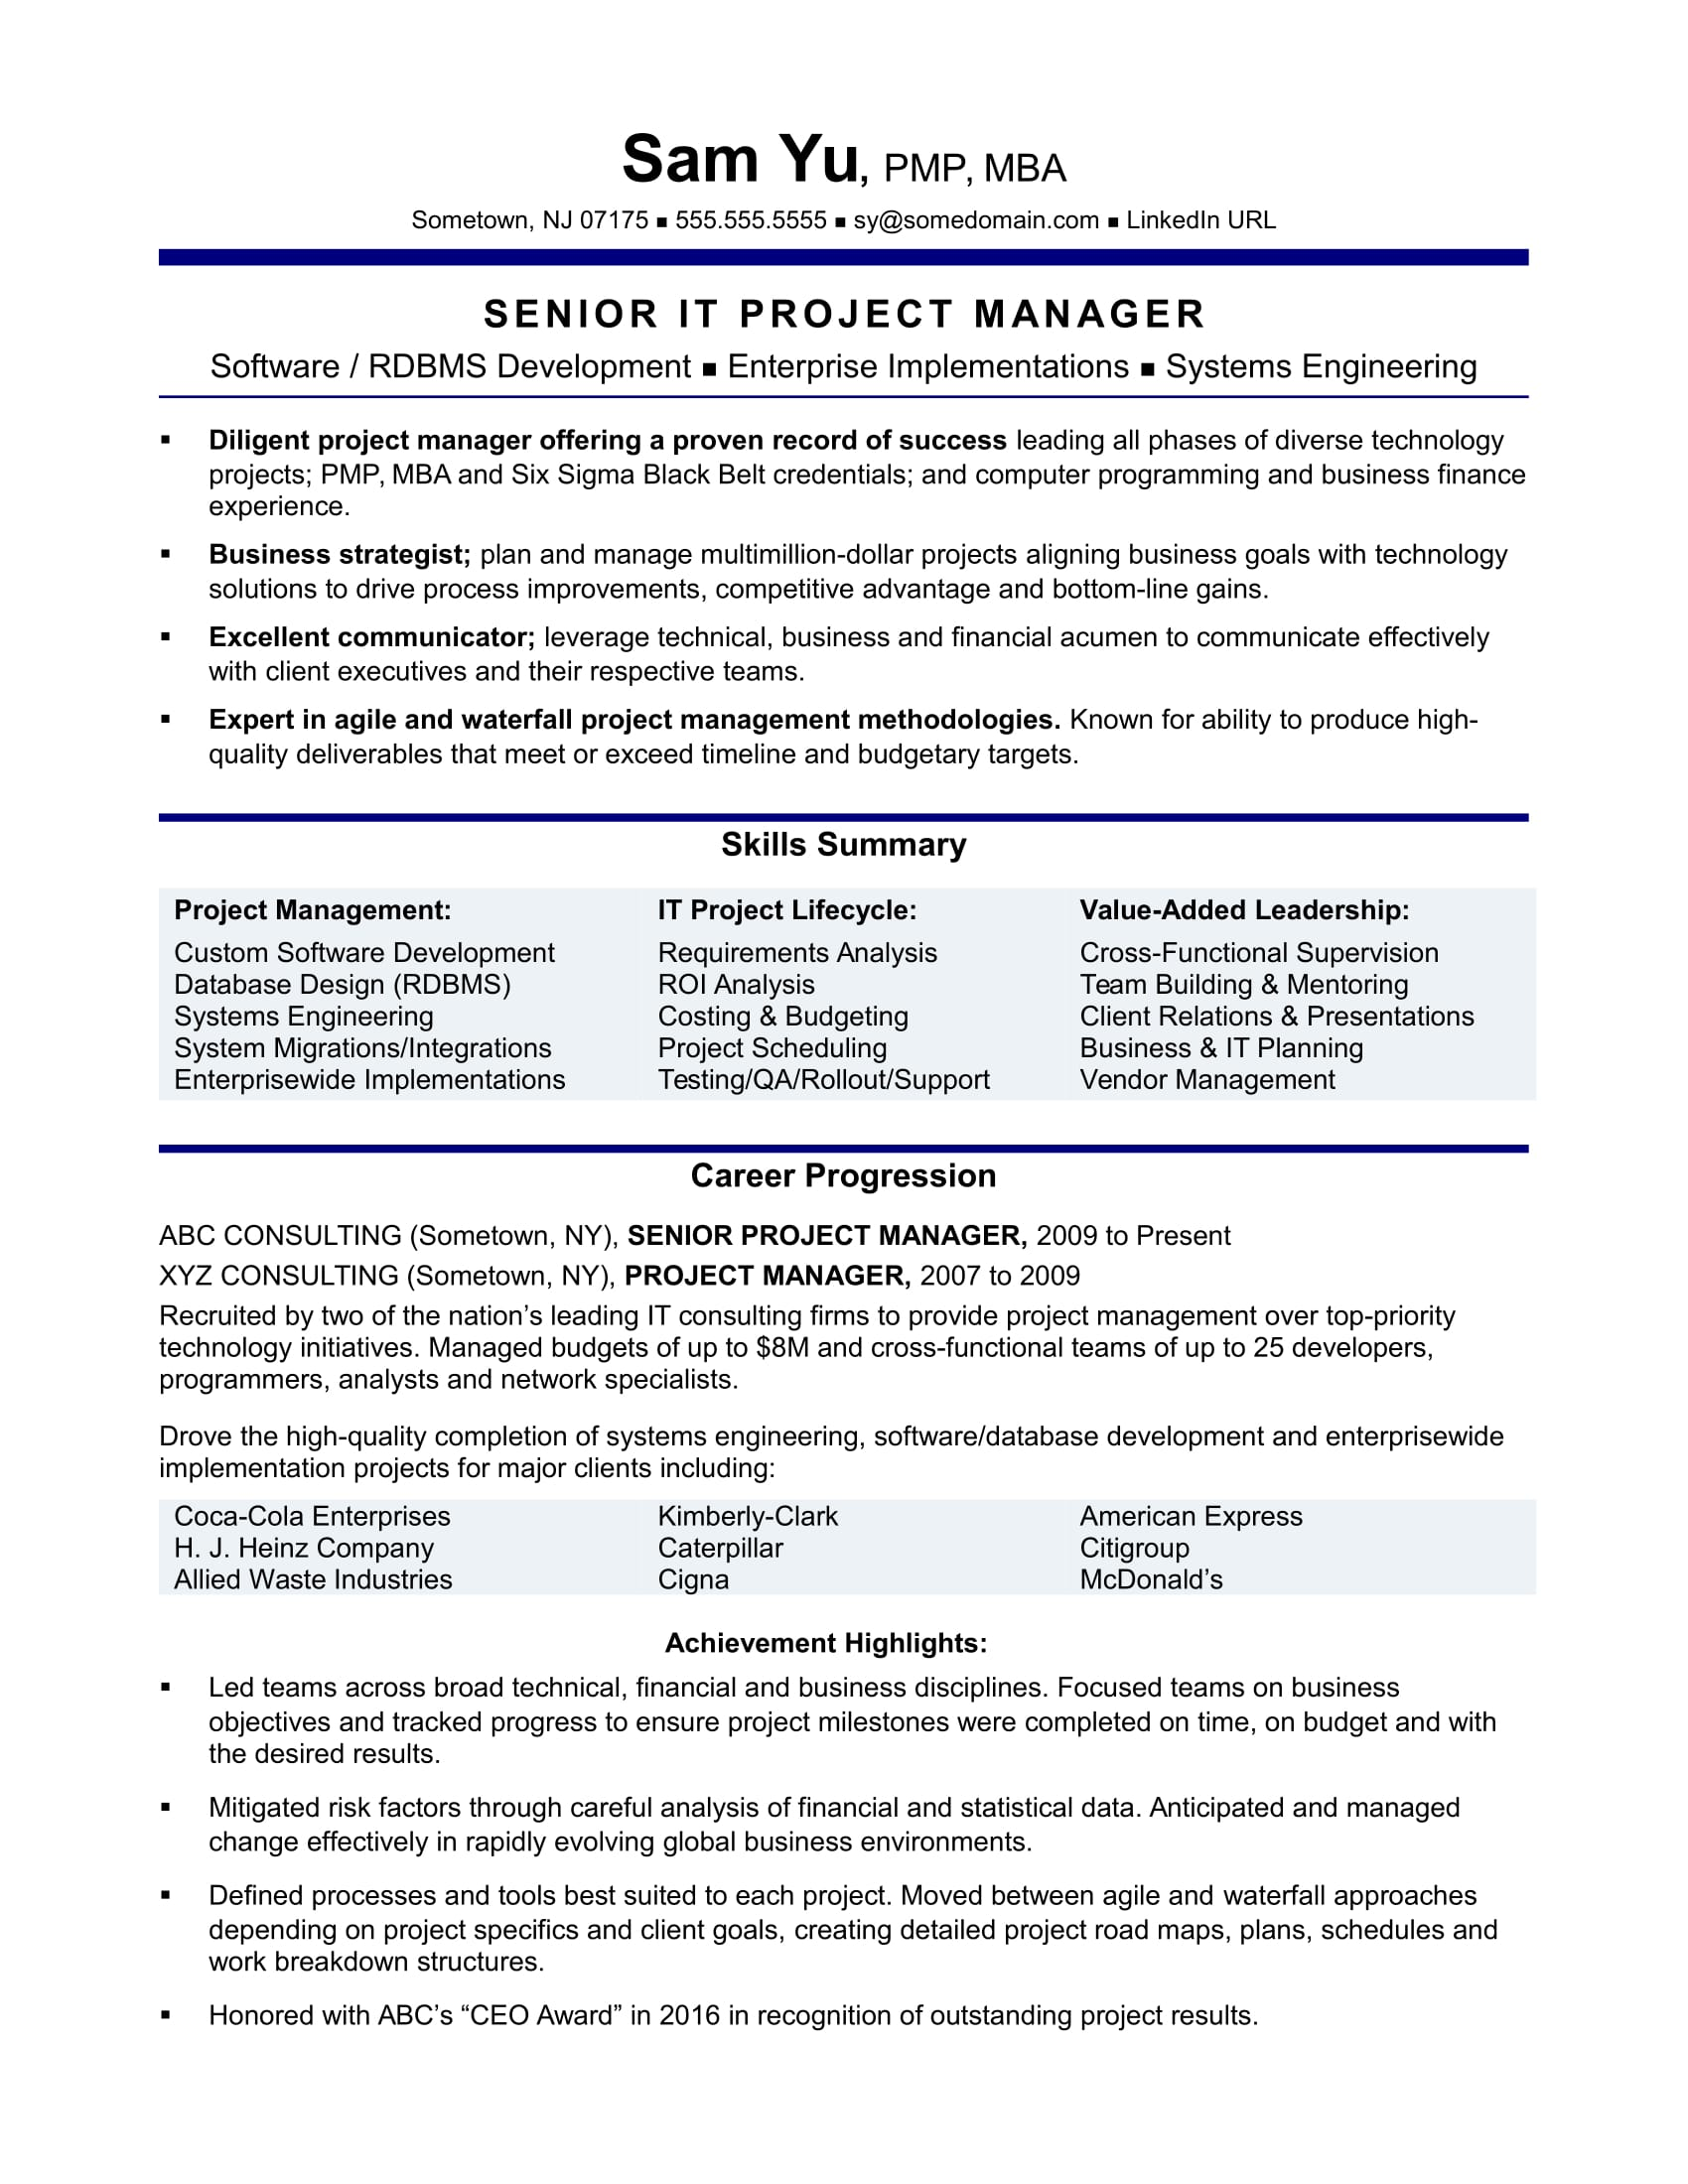 Wonderful Experienced IT Project Manager Resume Sample